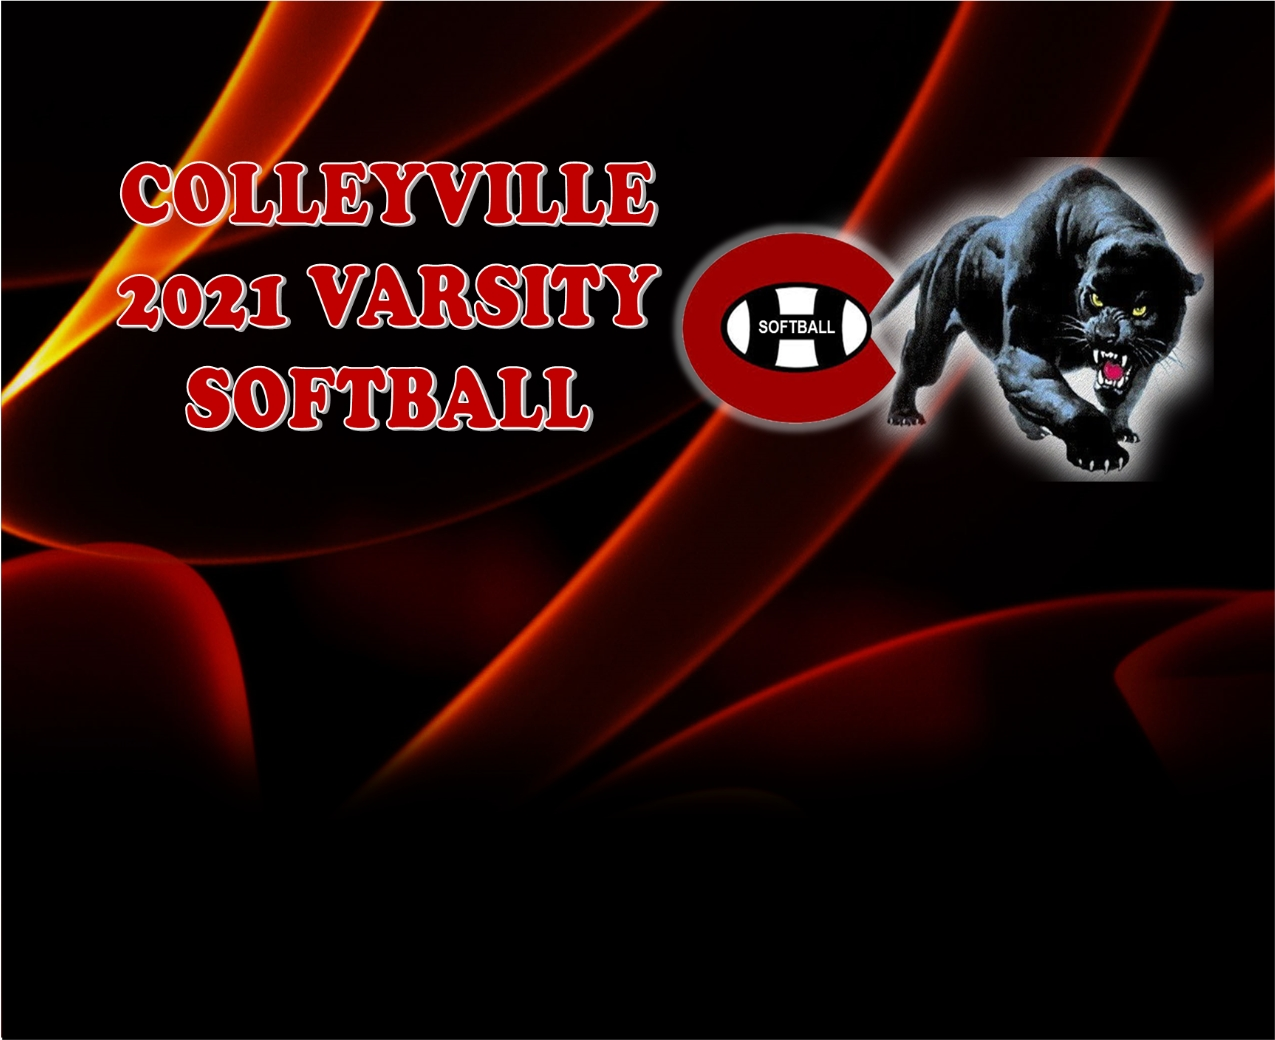 GCISD Softball: Colleyville Panthers Shut Out Granbury Pirates To Win Bi-District Playoff Series 7-0